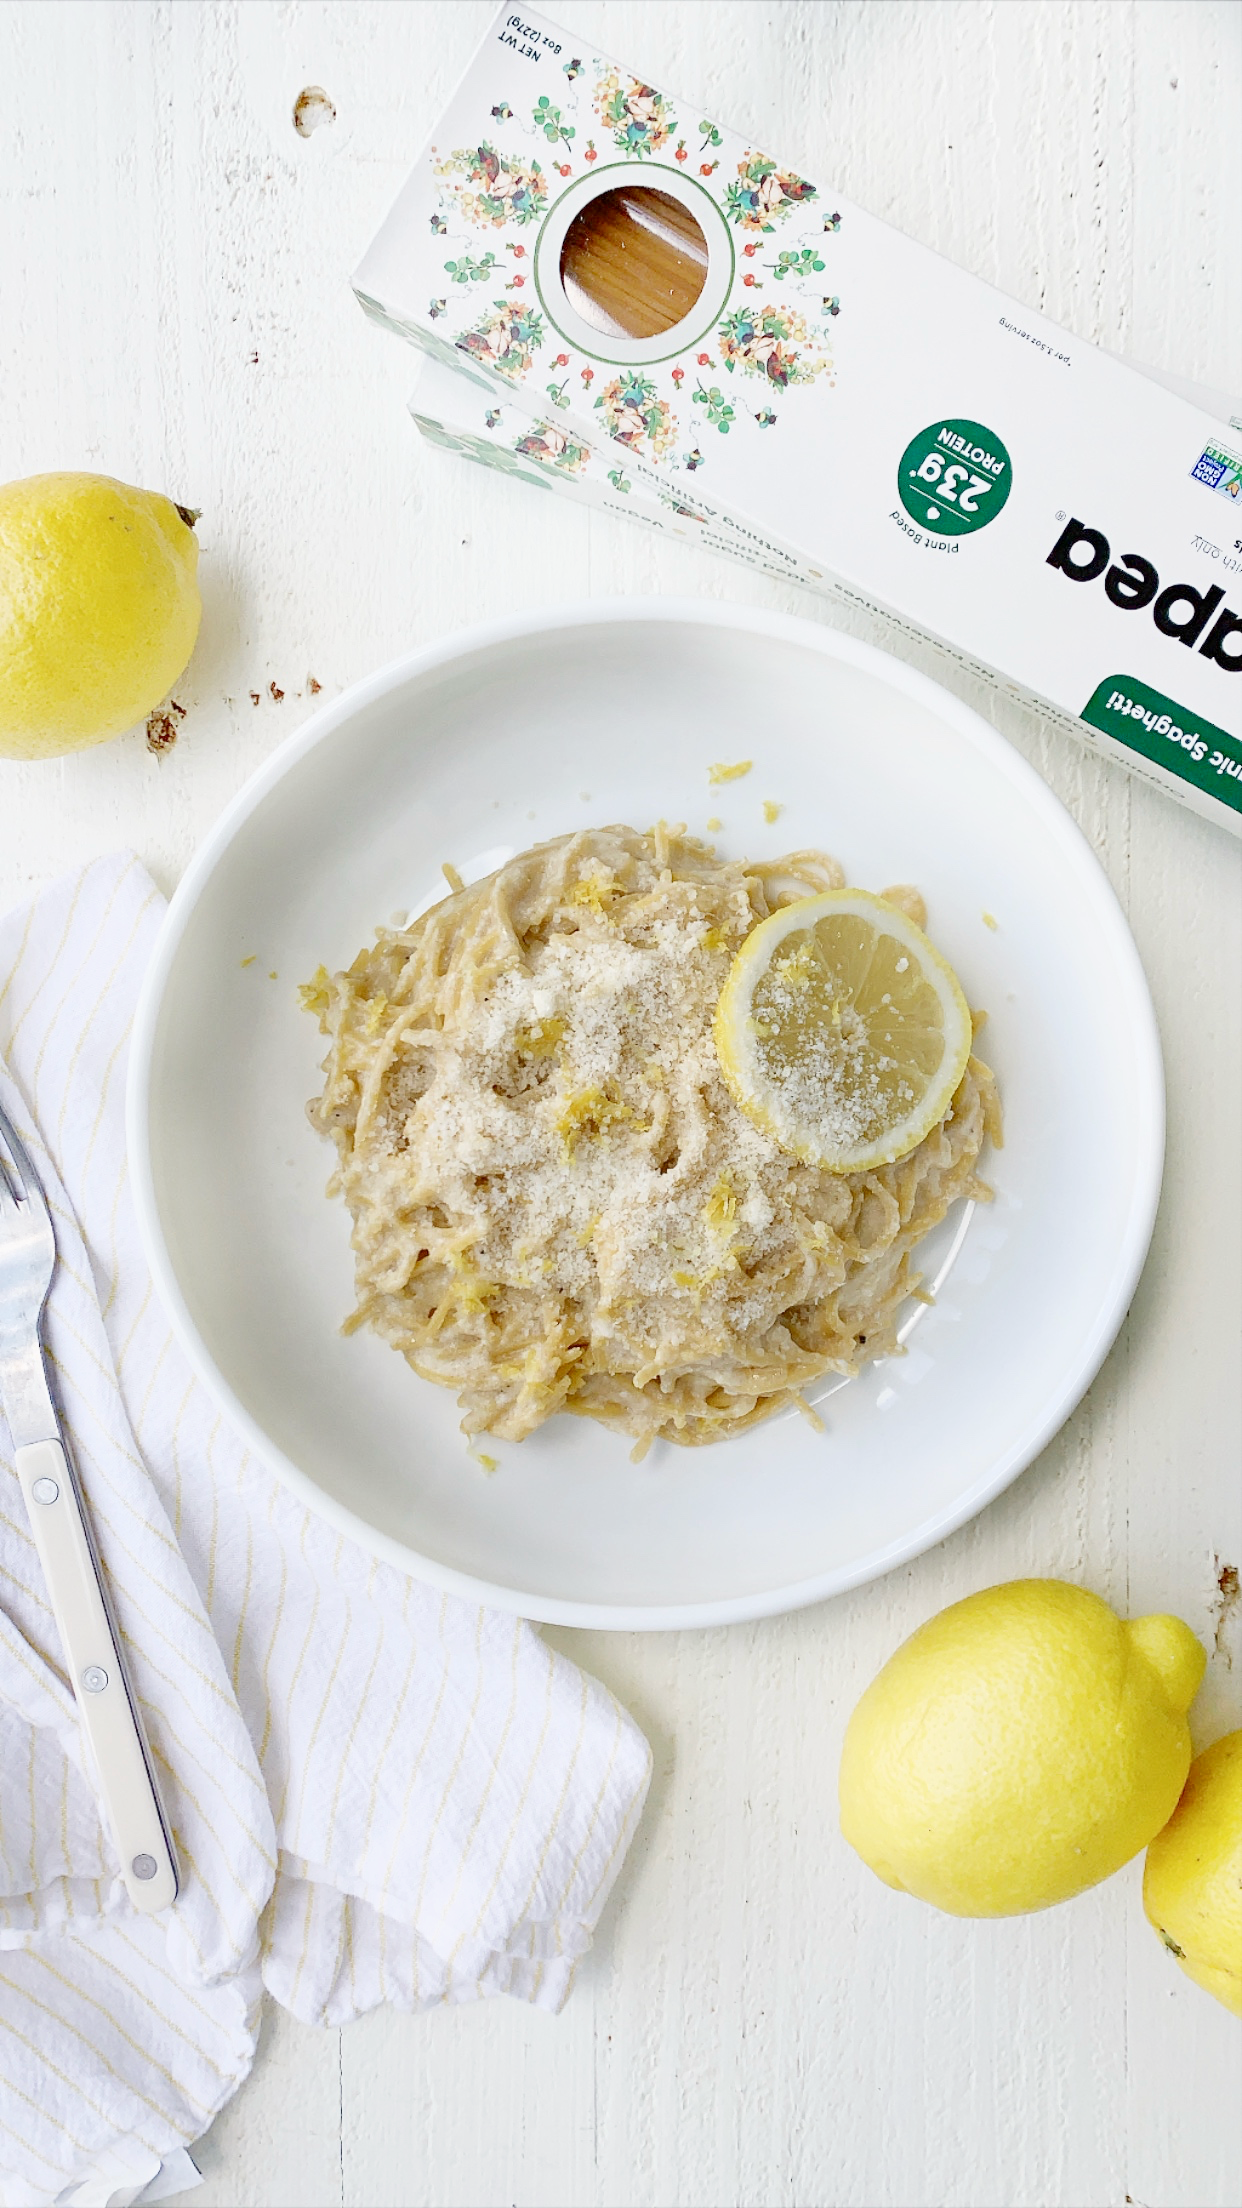 BETTER-FOR-YOU PASTA LIMONE RECIPE